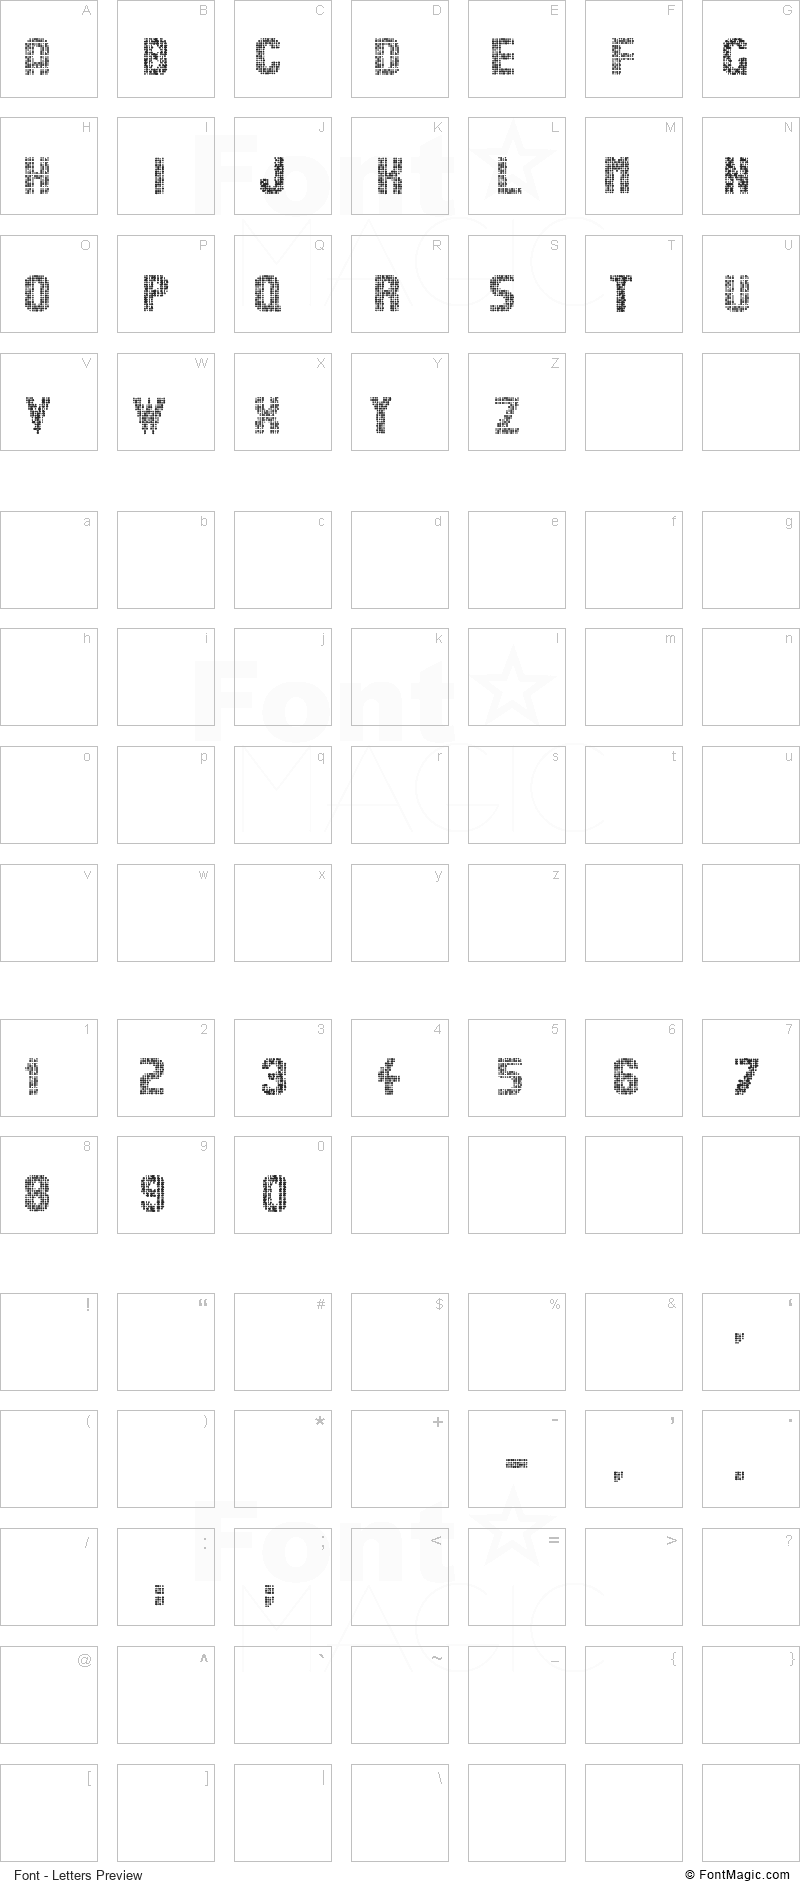 Stardots Font - All Latters Preview Chart